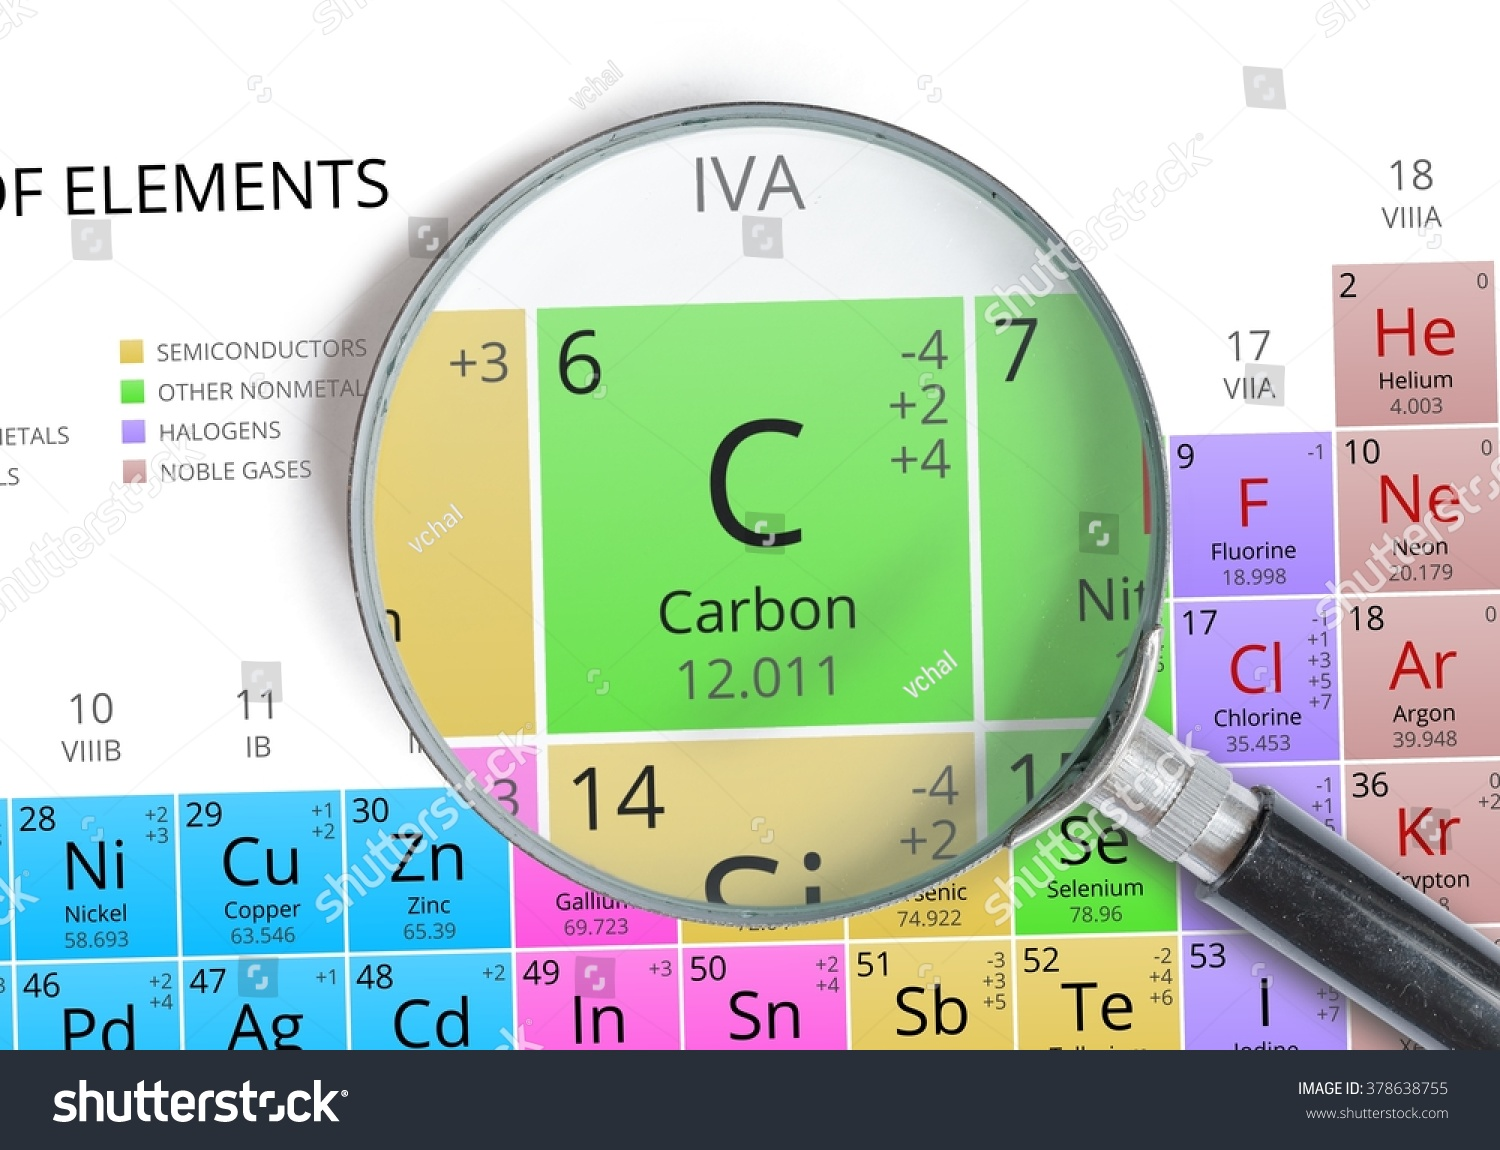 Carbon element periodic table gallery periodic table images 14th element periodic table image collections periodic table images carbon element periodic table images periodic table gamestrikefo Image collections